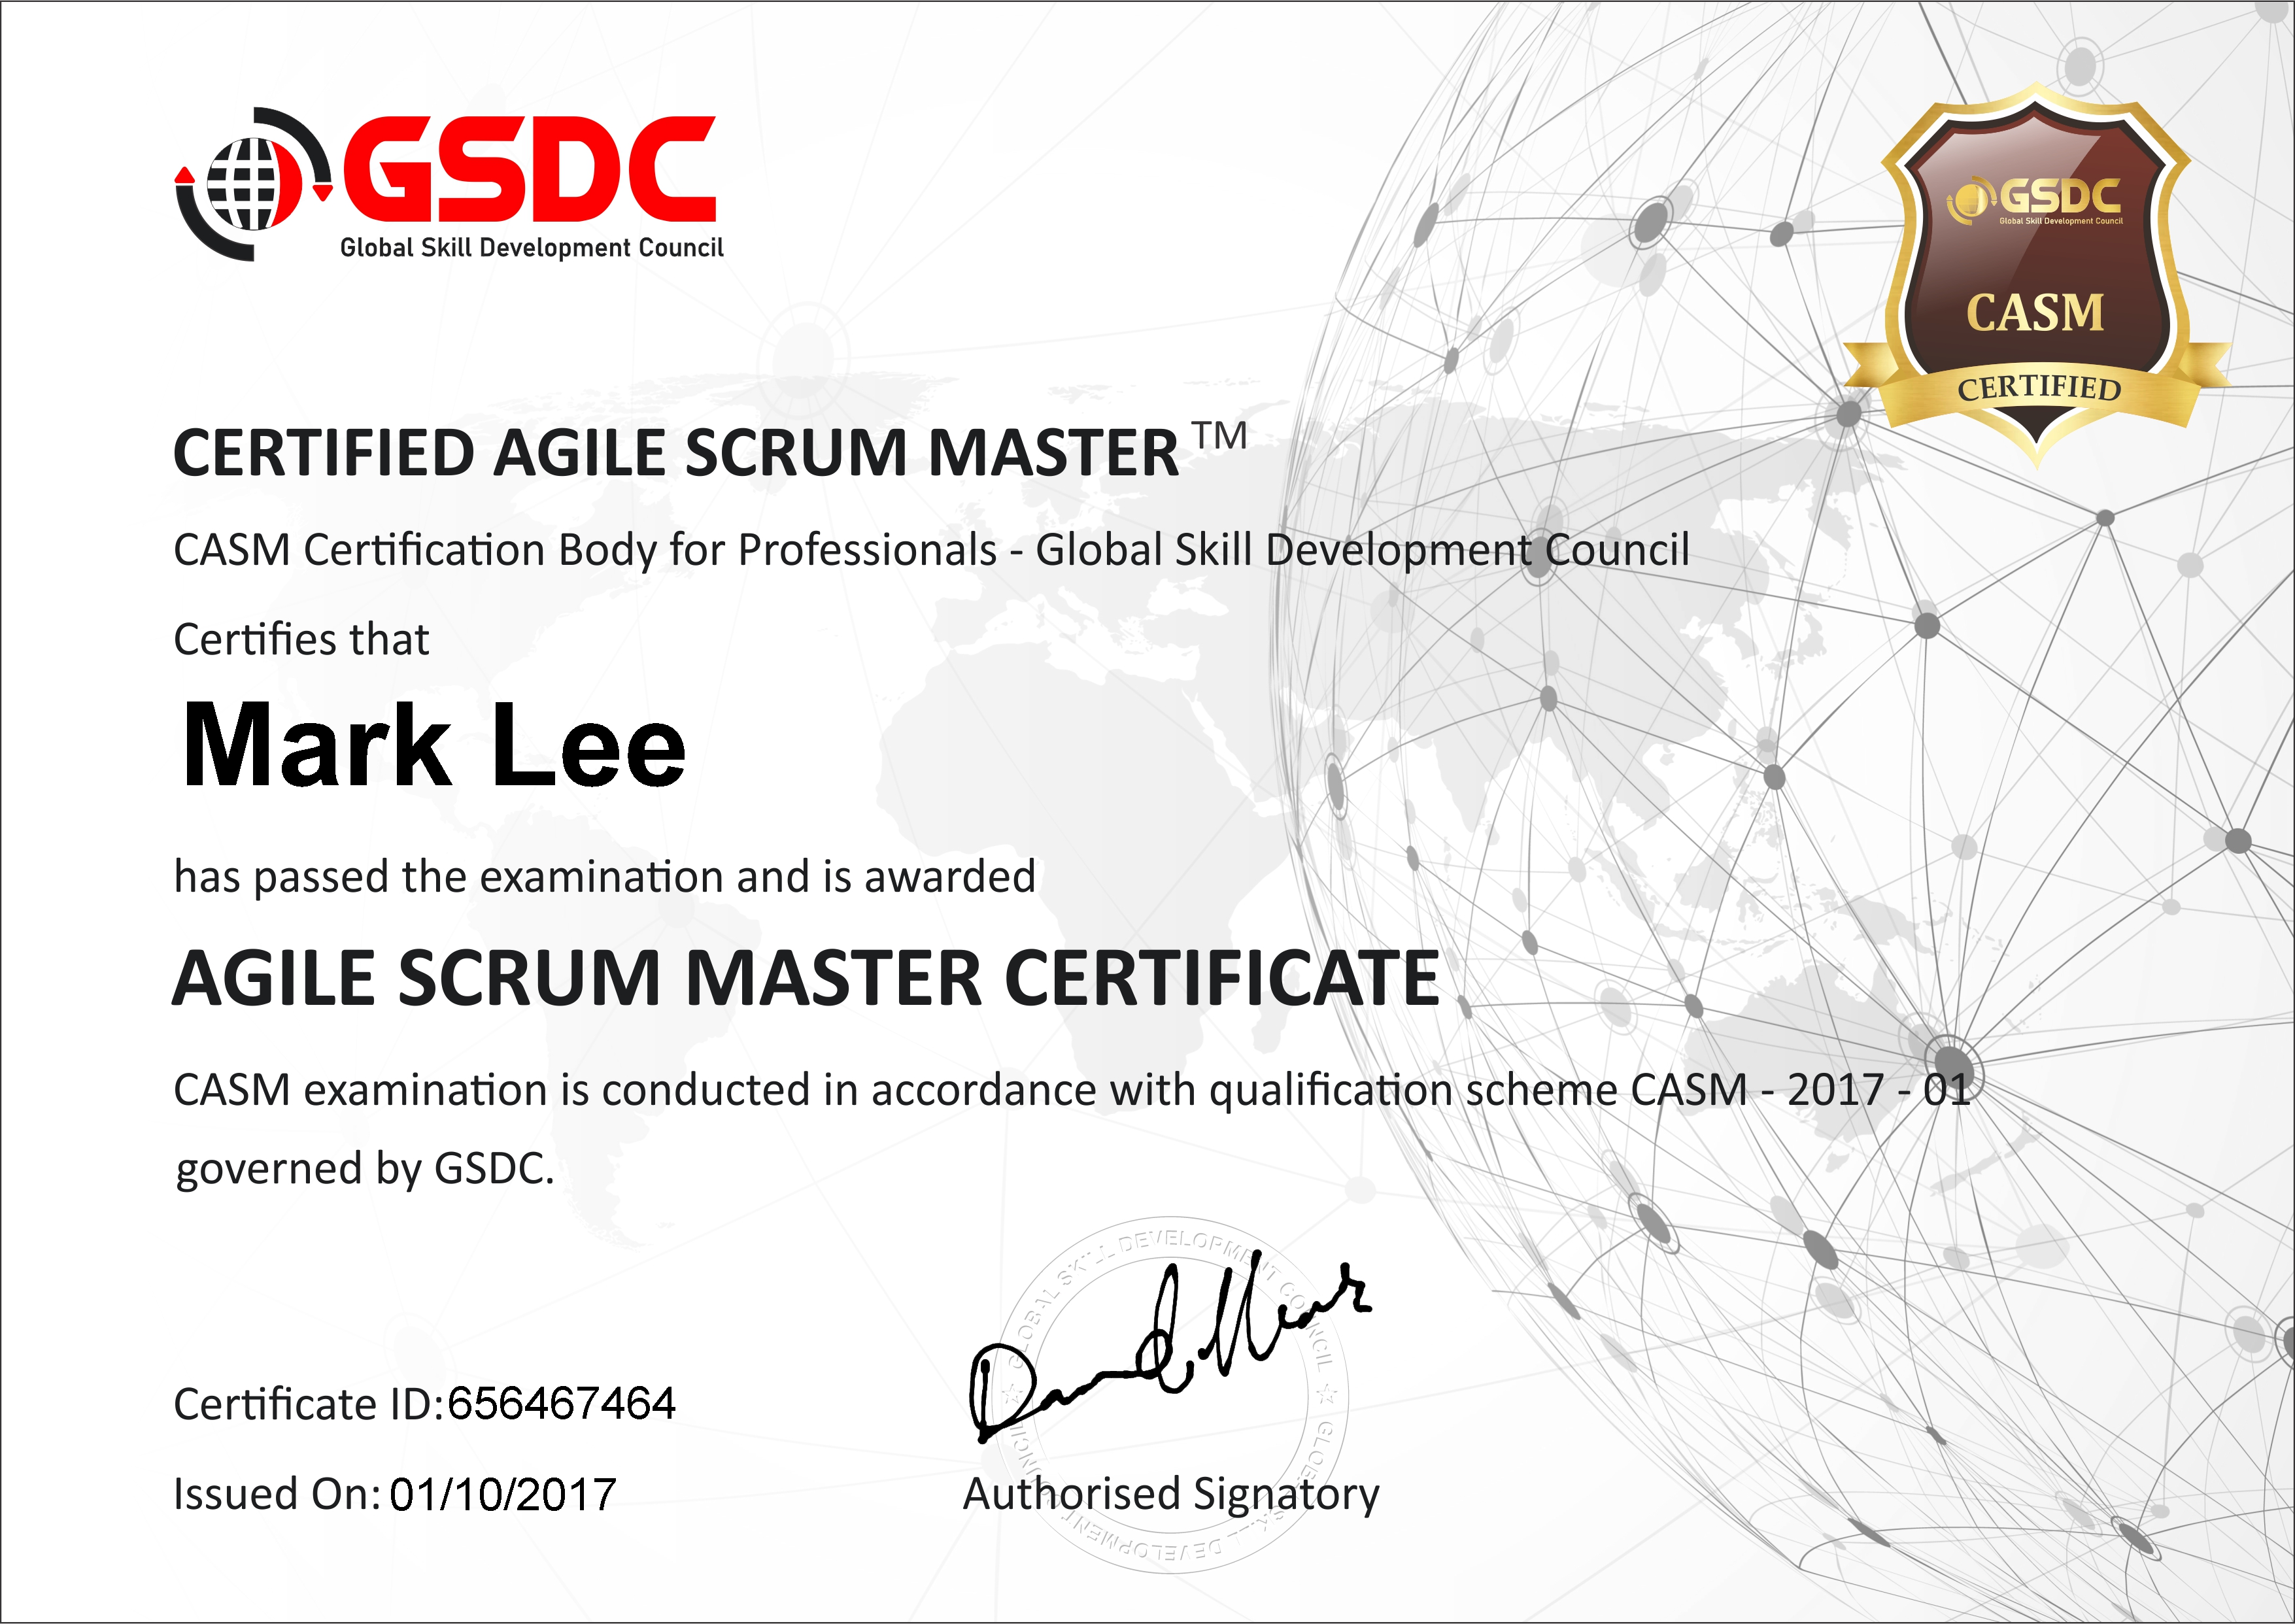 Certified Agile Scrum Master Casm Gsdcouncil